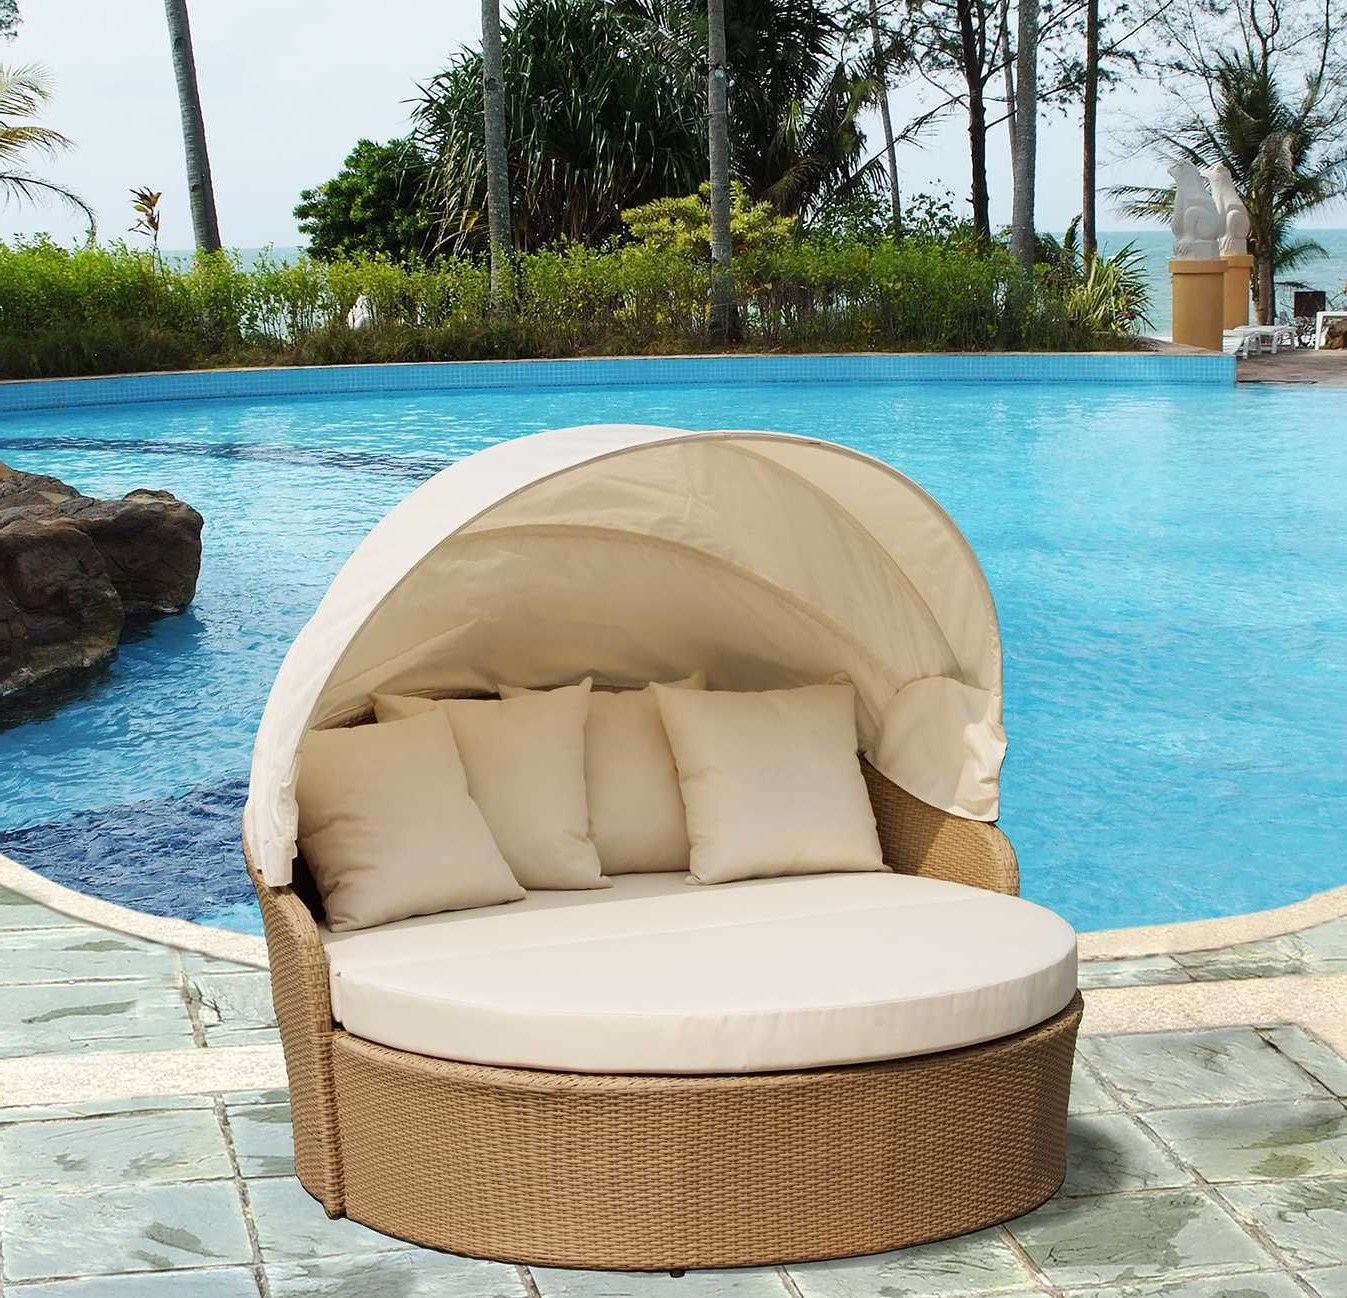 Best And Newest Behling Canopy Patio Daybeds With Cushions Regarding Furniture Outdoor Furniture (View 7 of 25)